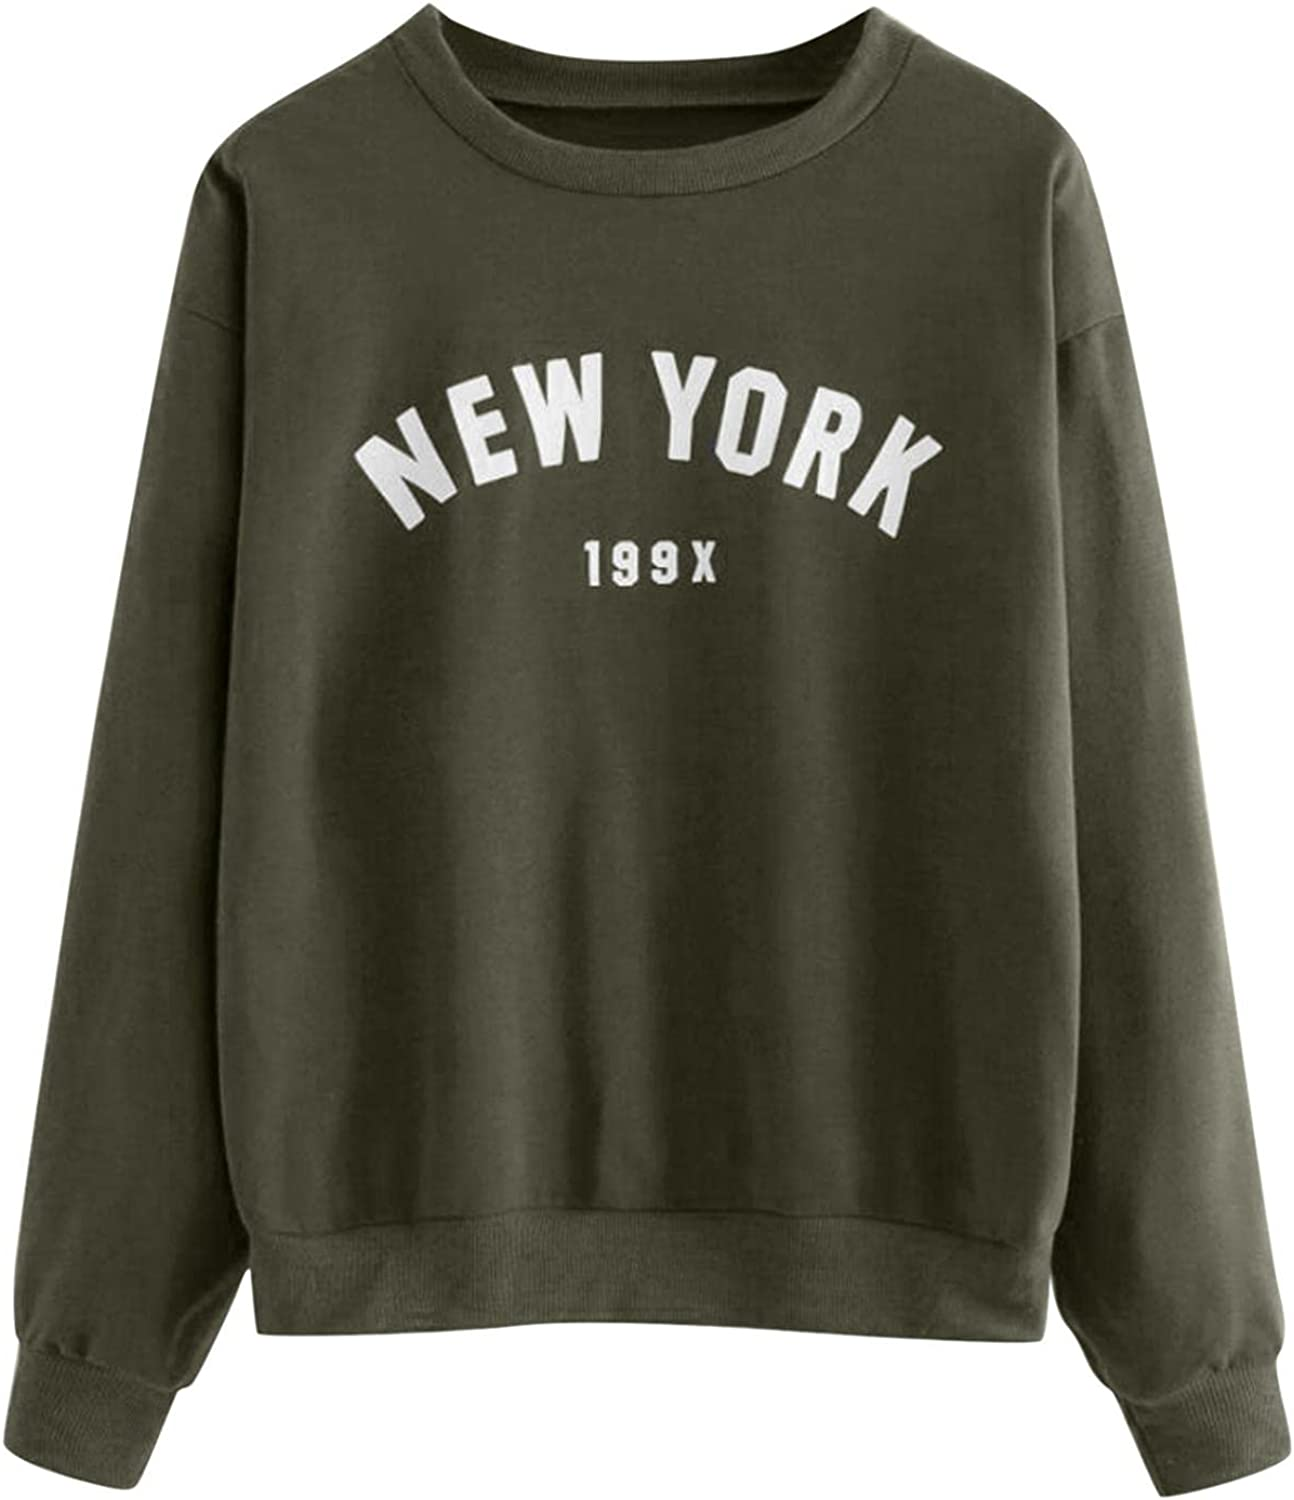 Basic Sweatshirts Womens, Fashion New York 199x Letter Print Pullover Tops Long Sleeve Round Neck Blouse for Teen Girl